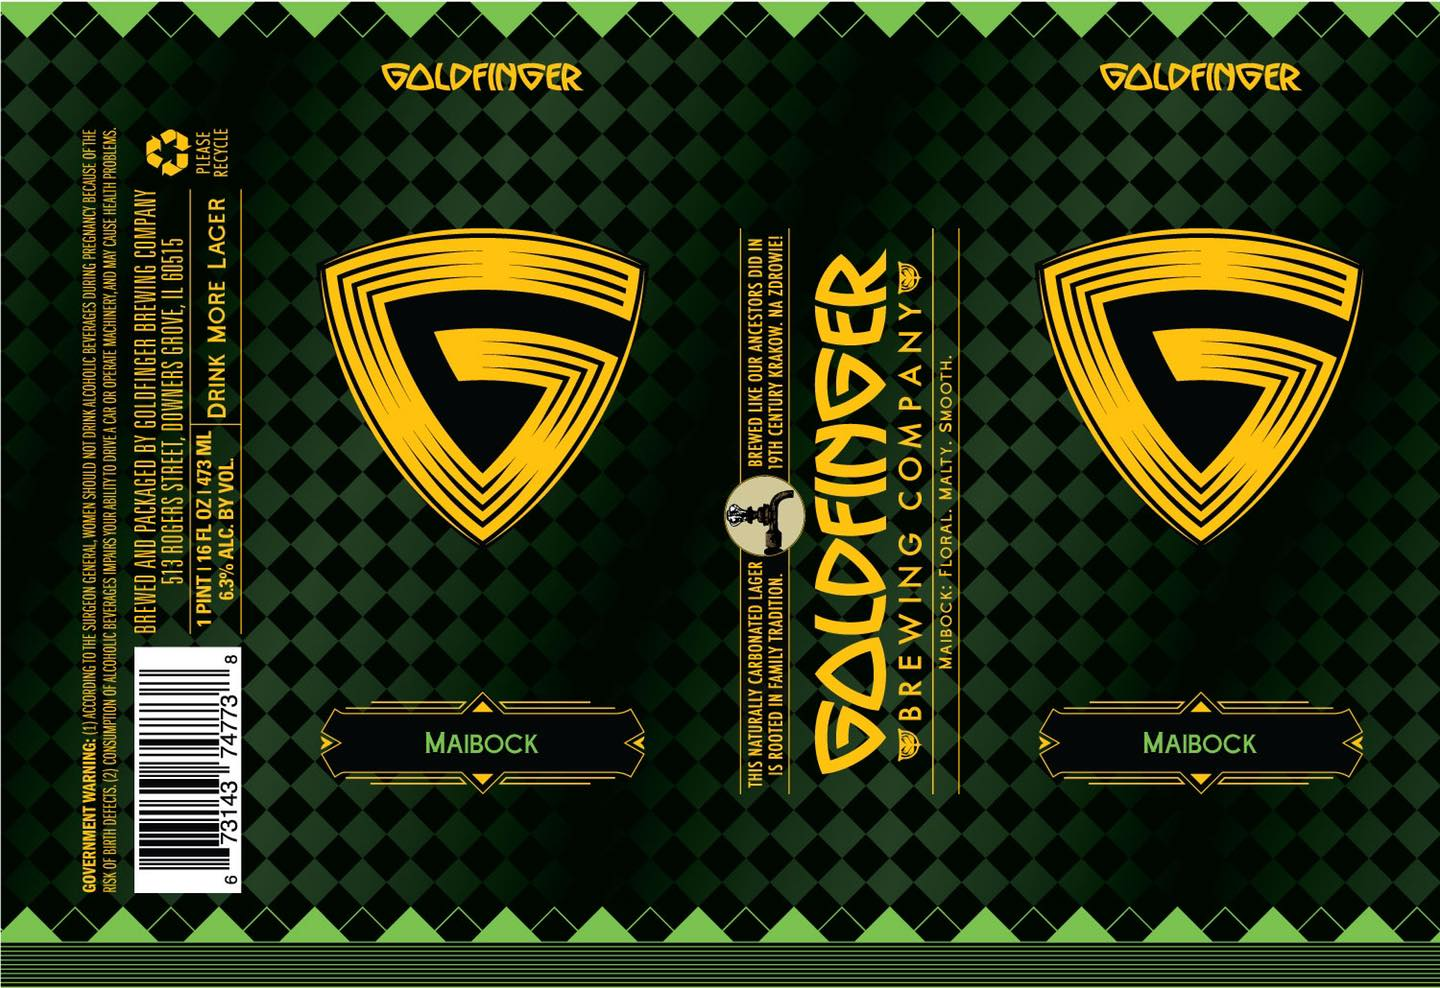 Label for Goldfinger's Maibock